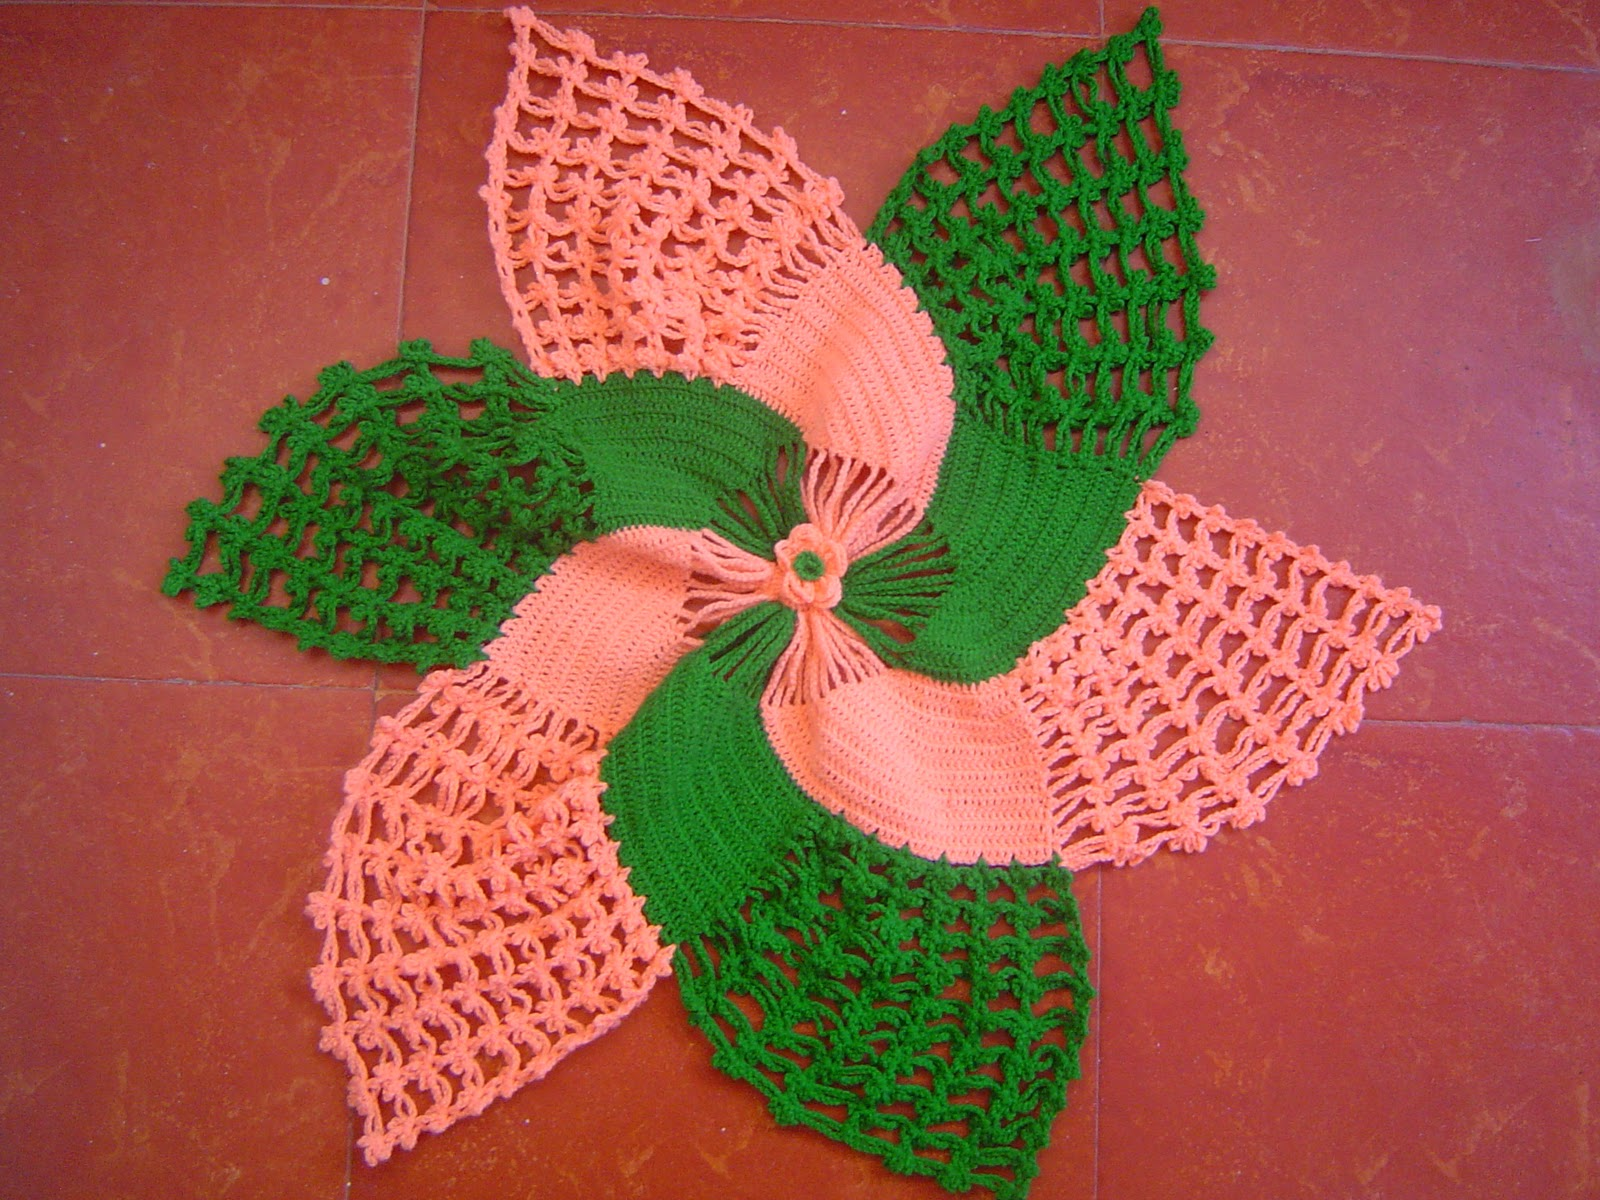 Crochet Work : Creative Usha: Crochet Work